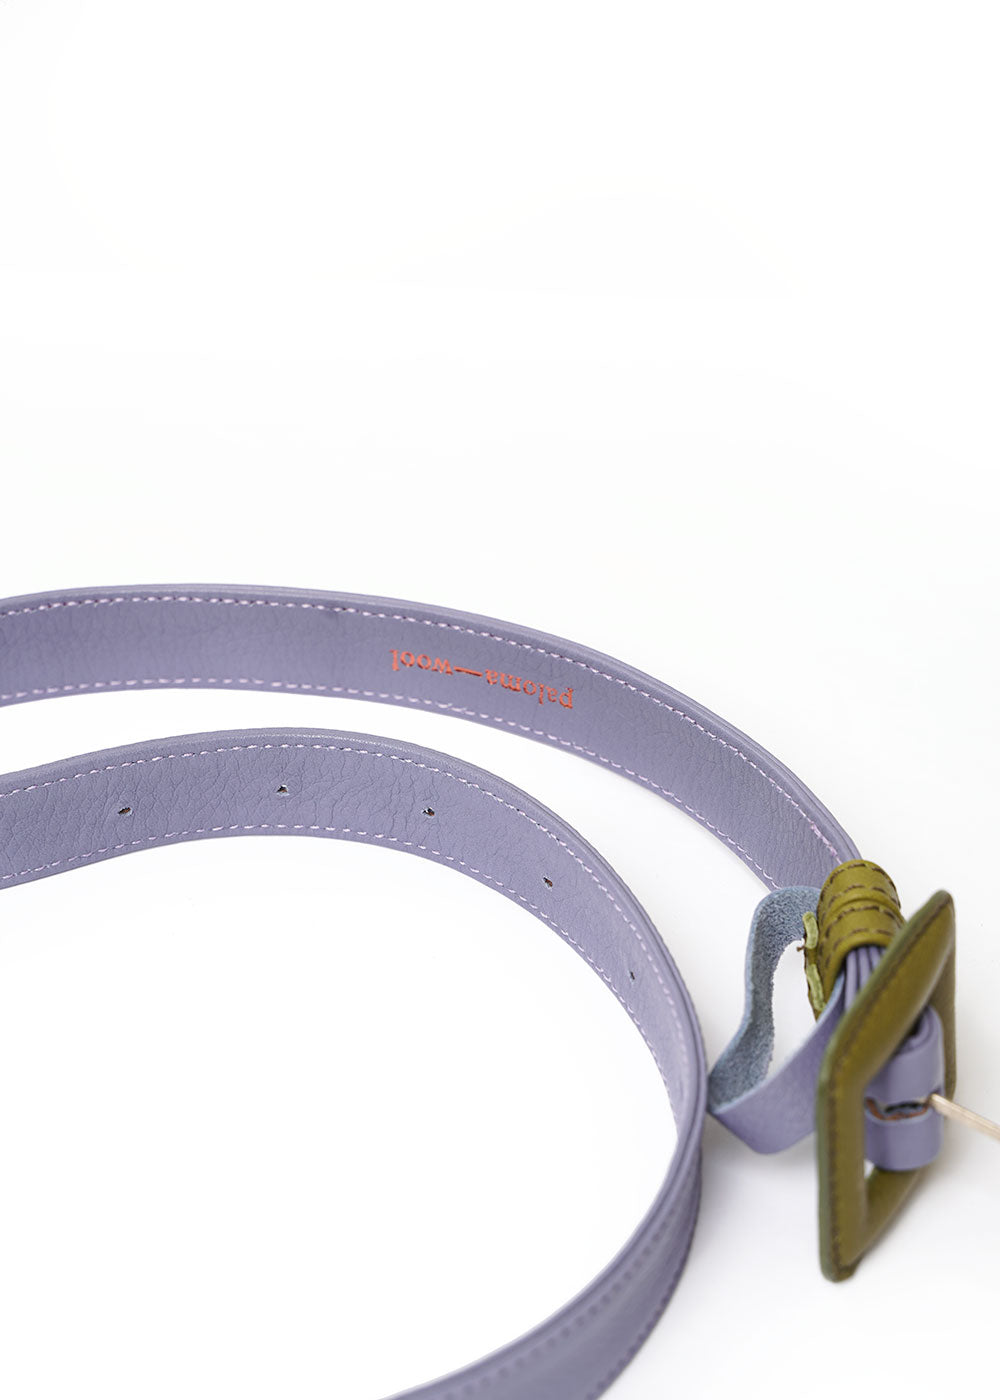 Paloma Wool Purple/Green Centauro Belt — Shop sustainable fashion and slow fashion at New Classics Studios